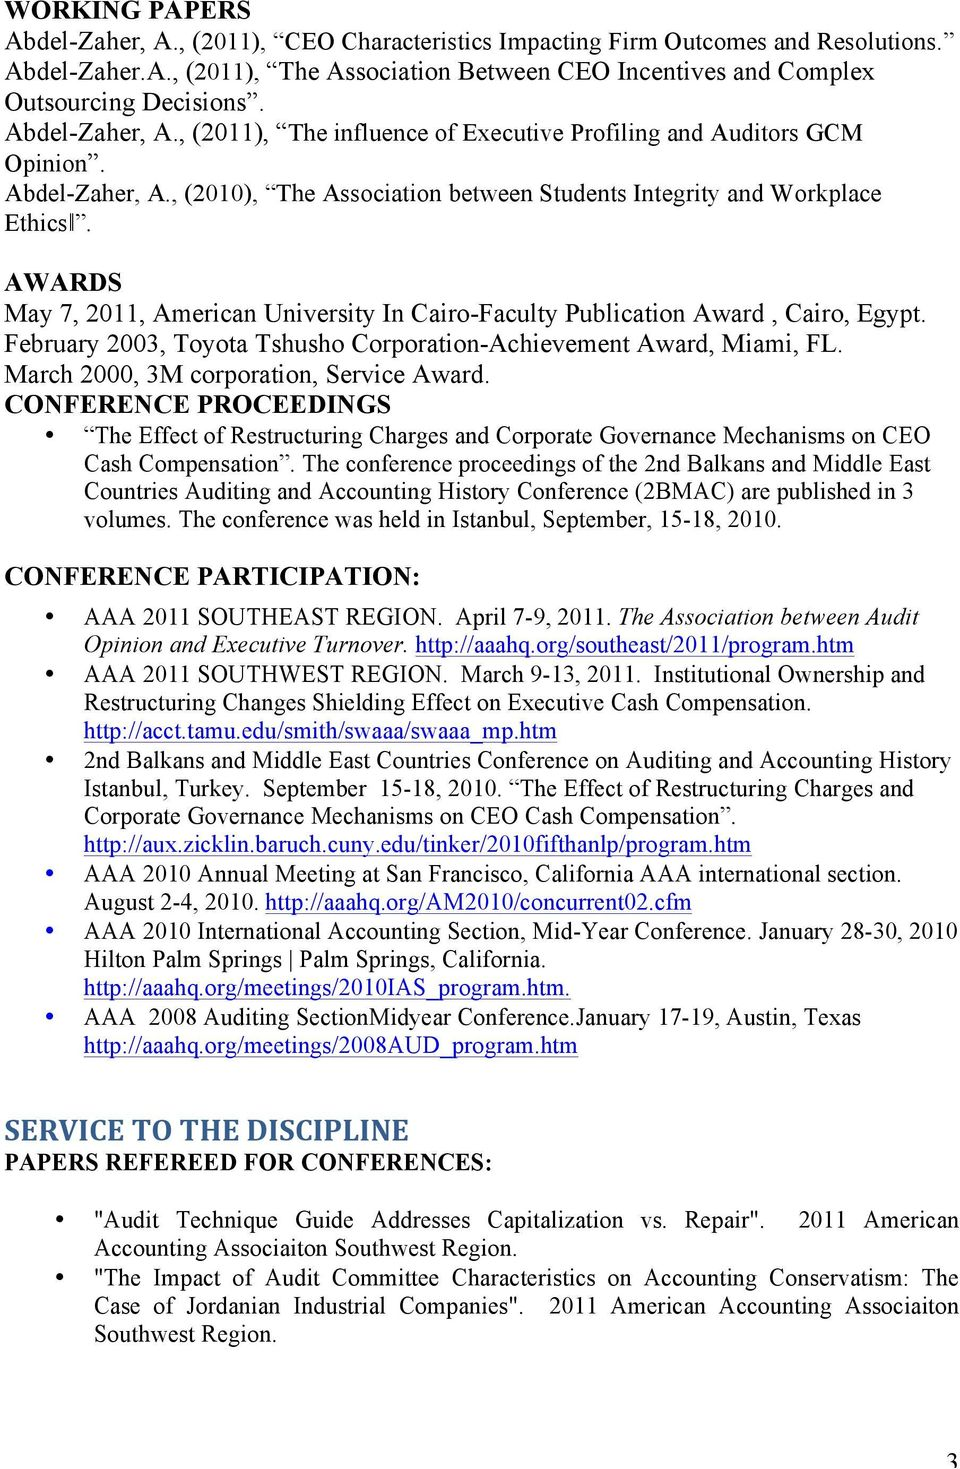 AWARDS May 7, 2011, American University In Cairo-Faculty Publication Award, Cairo, Egypt. February 2003, Toyota Tshusho Corporation-Achievement Award, Miami, FL.